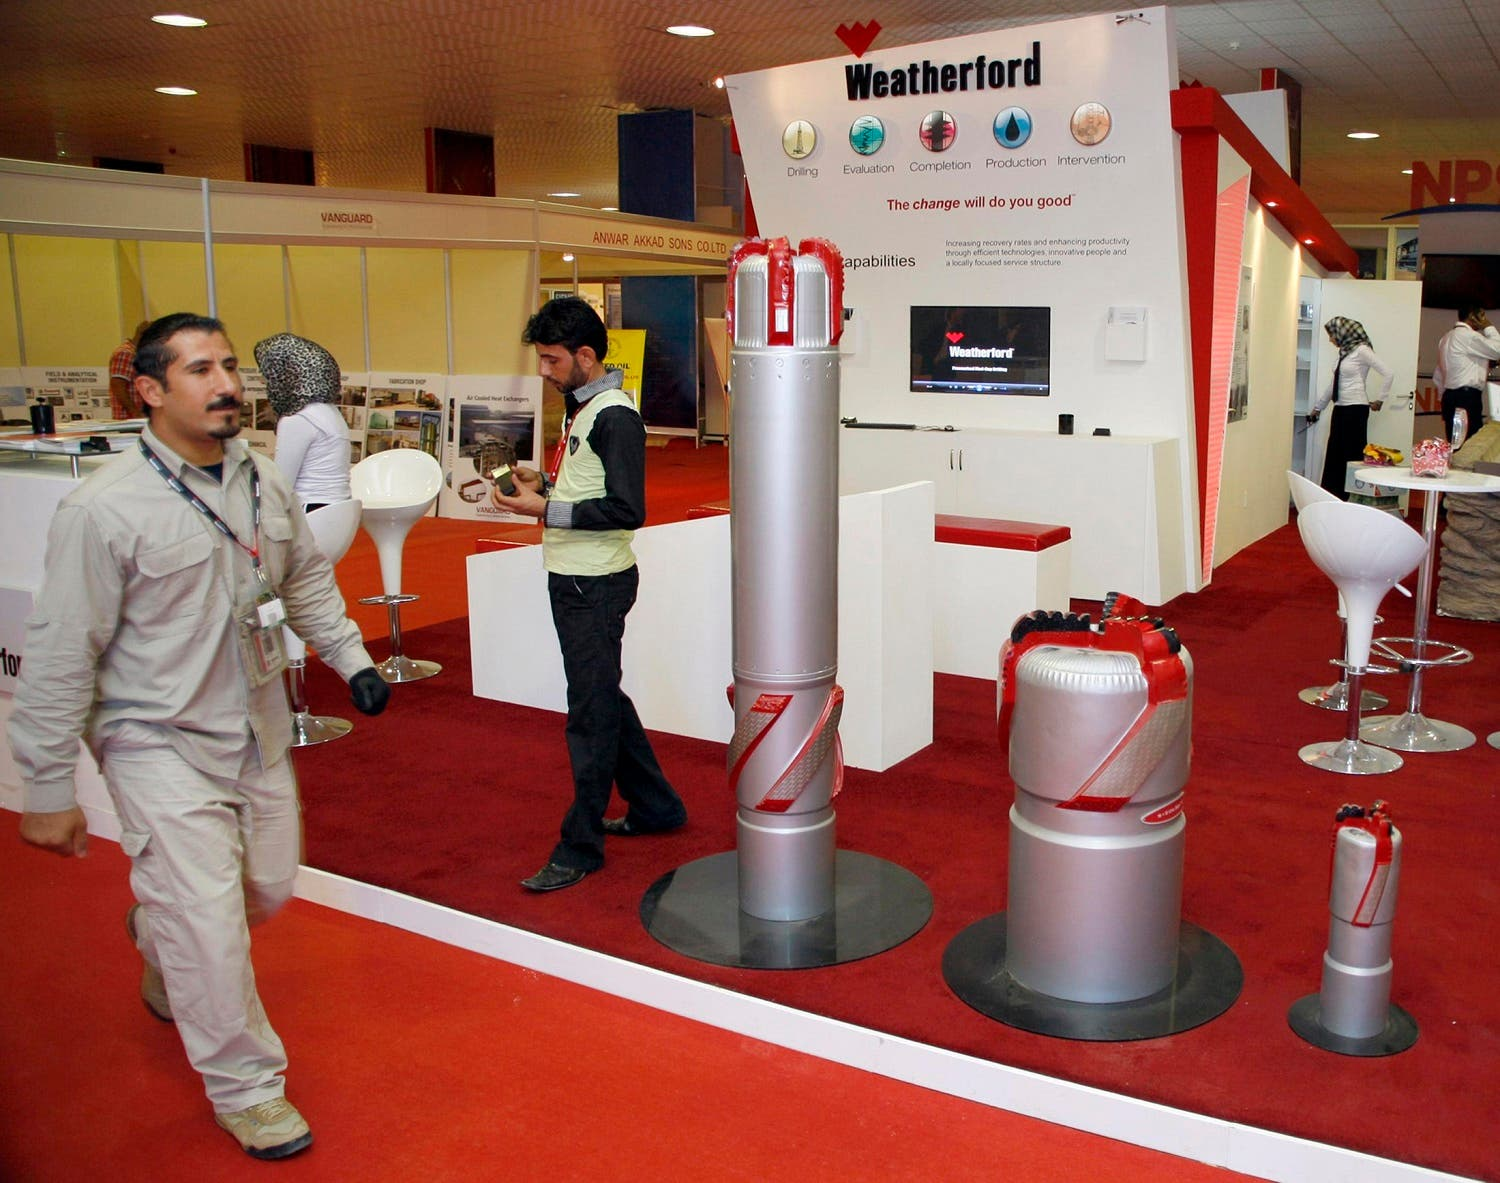 A security guard walks past the Weatherford booth during the Basra International trade fair for oil and gas in Basra, Iraq in a November 25, 2010 file photo. (Reuters)